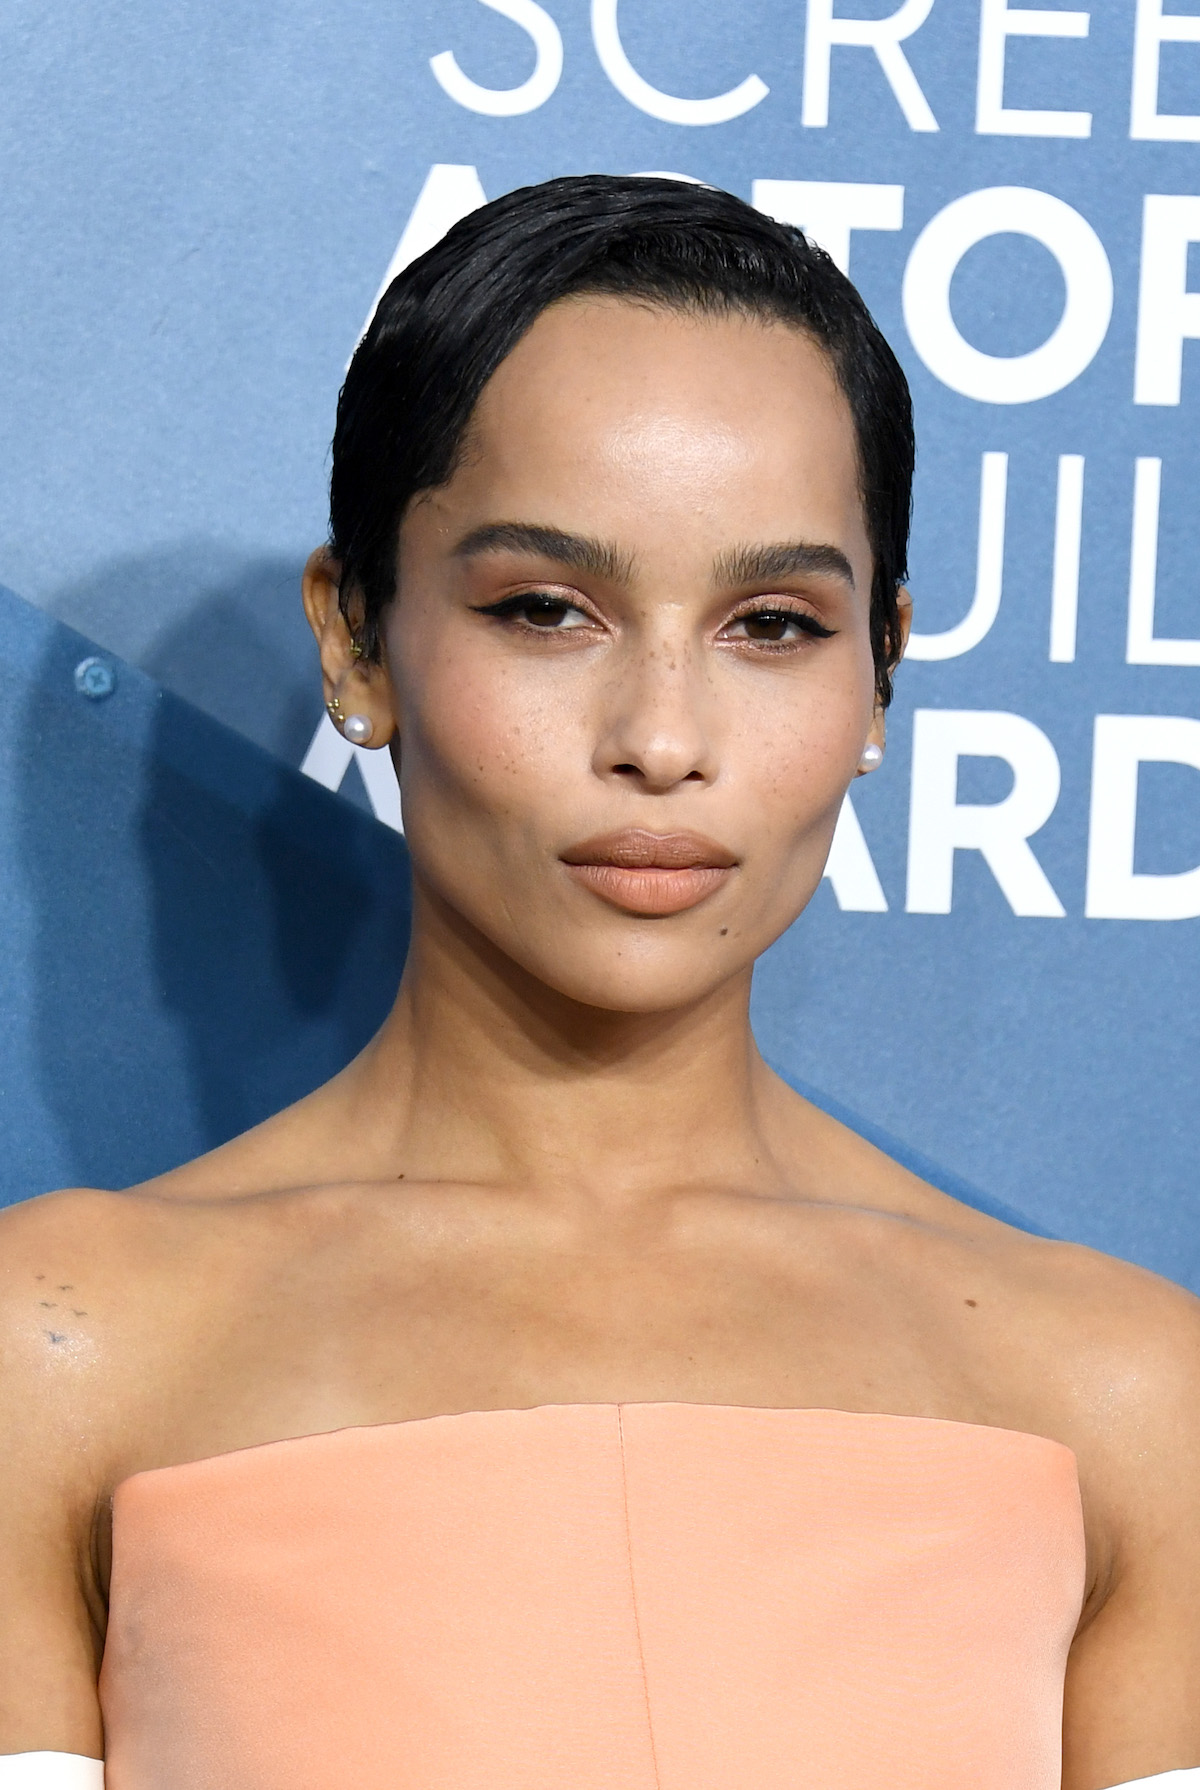 Zoë Kravitz attends the 26th Annual Screen ActorsGuild Awards at The Shrine Auditorium on January 19, 2020 in Los Angeles, California.